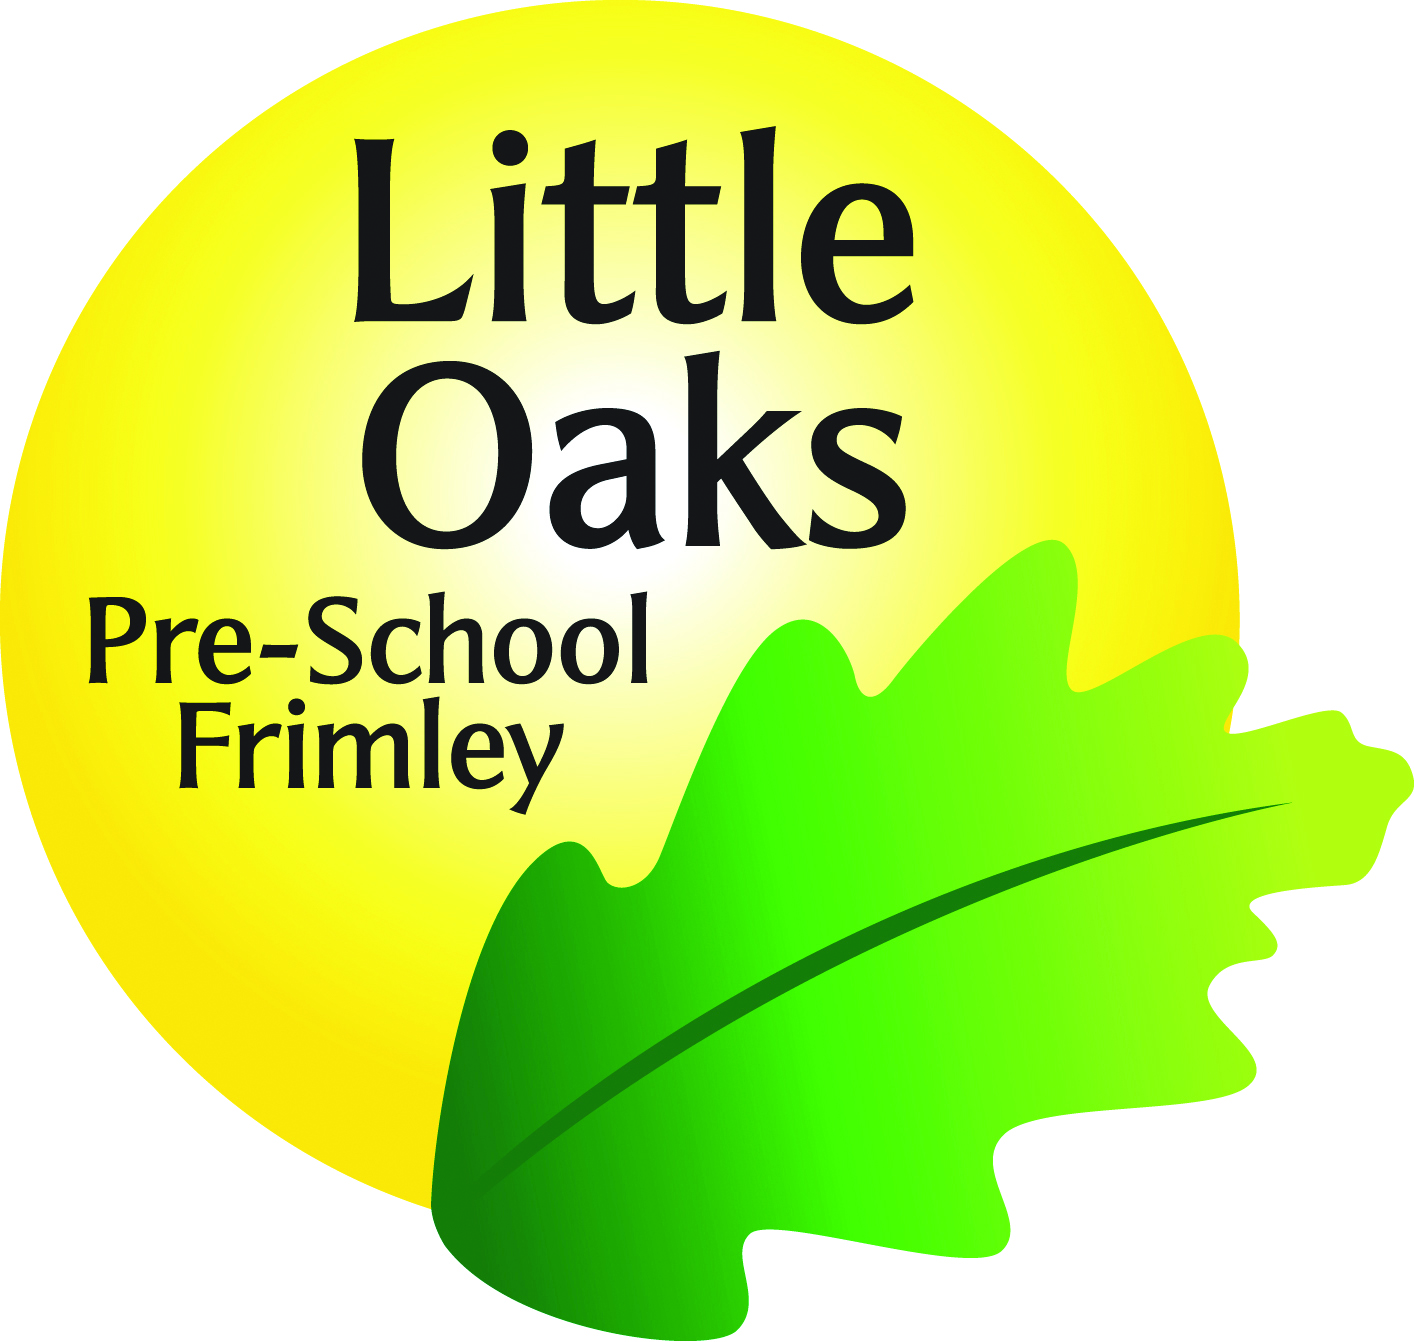 Little Oaks Frimley